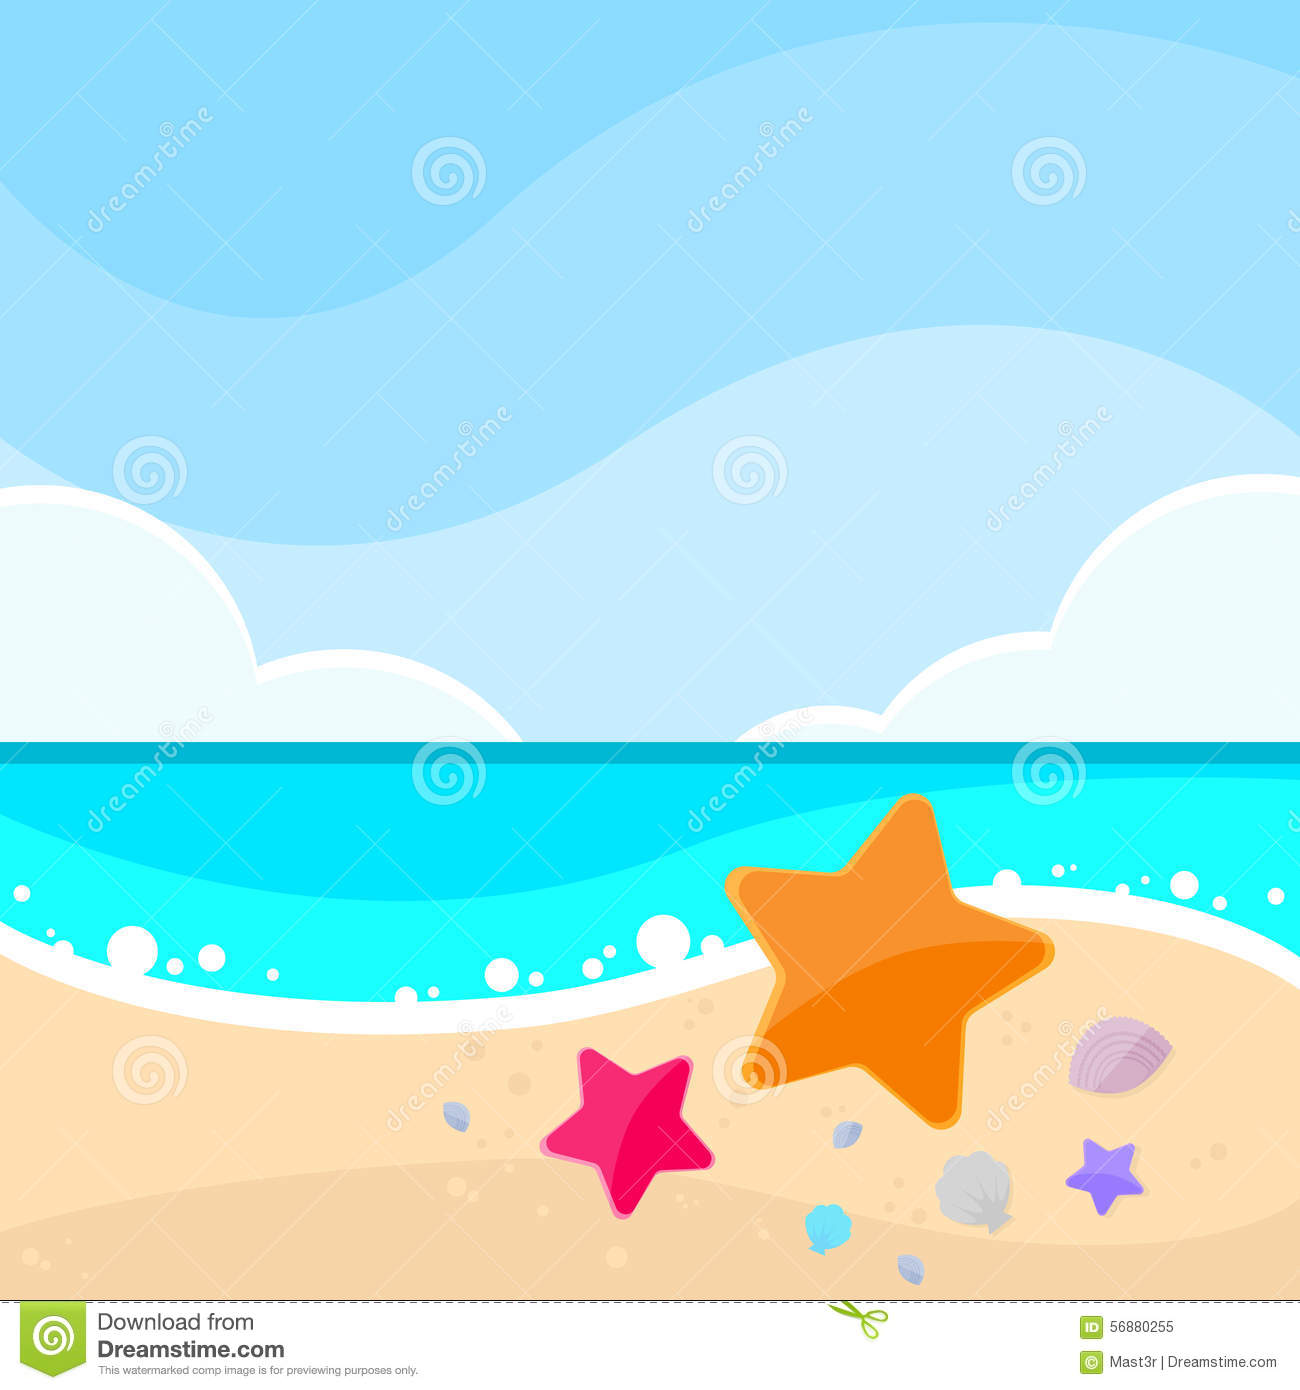 Carta delle stelle marine di Marine Beach Sand Sea Star di estate